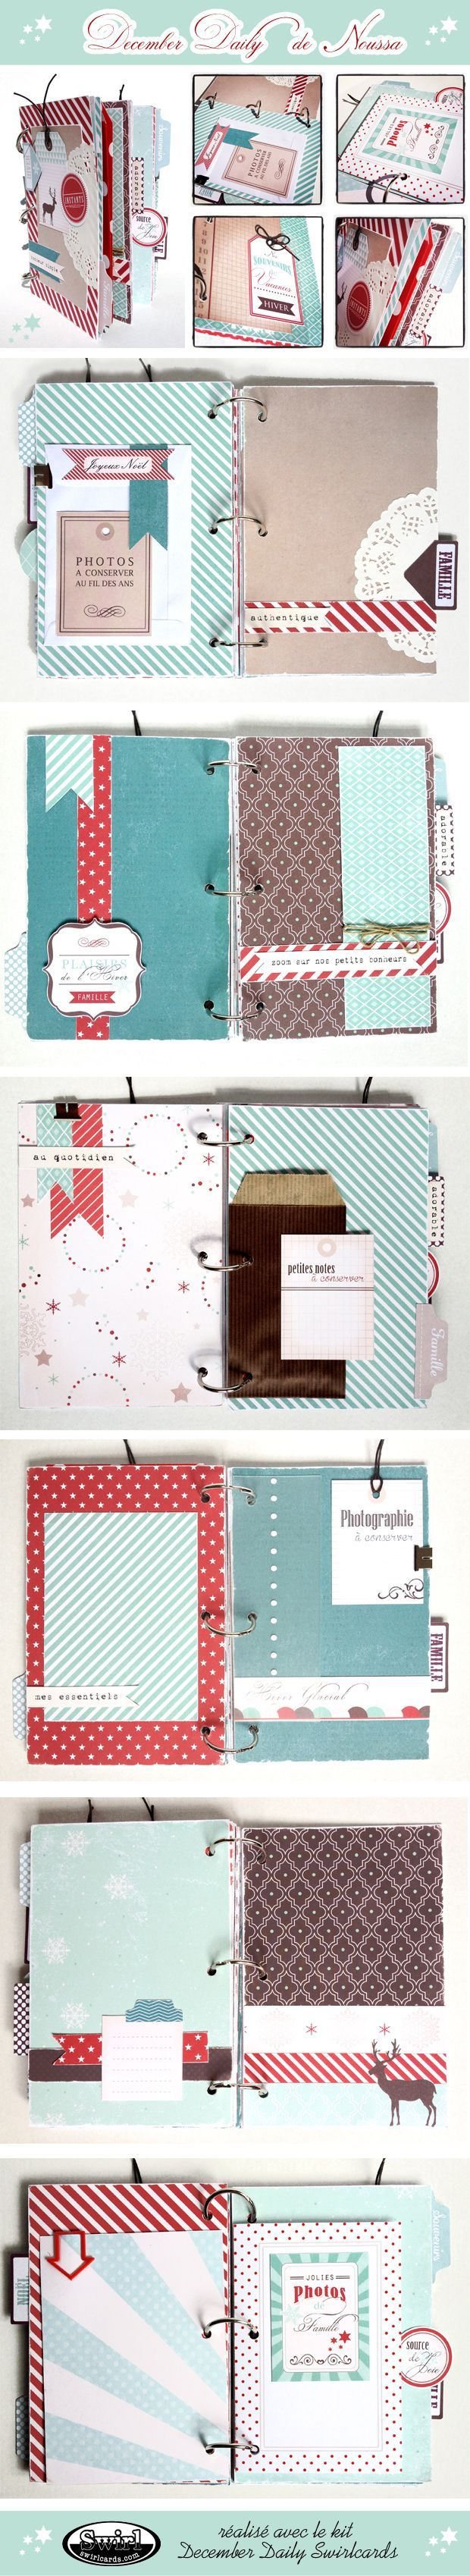 December Daily de Noussa - kit Swirlcards: